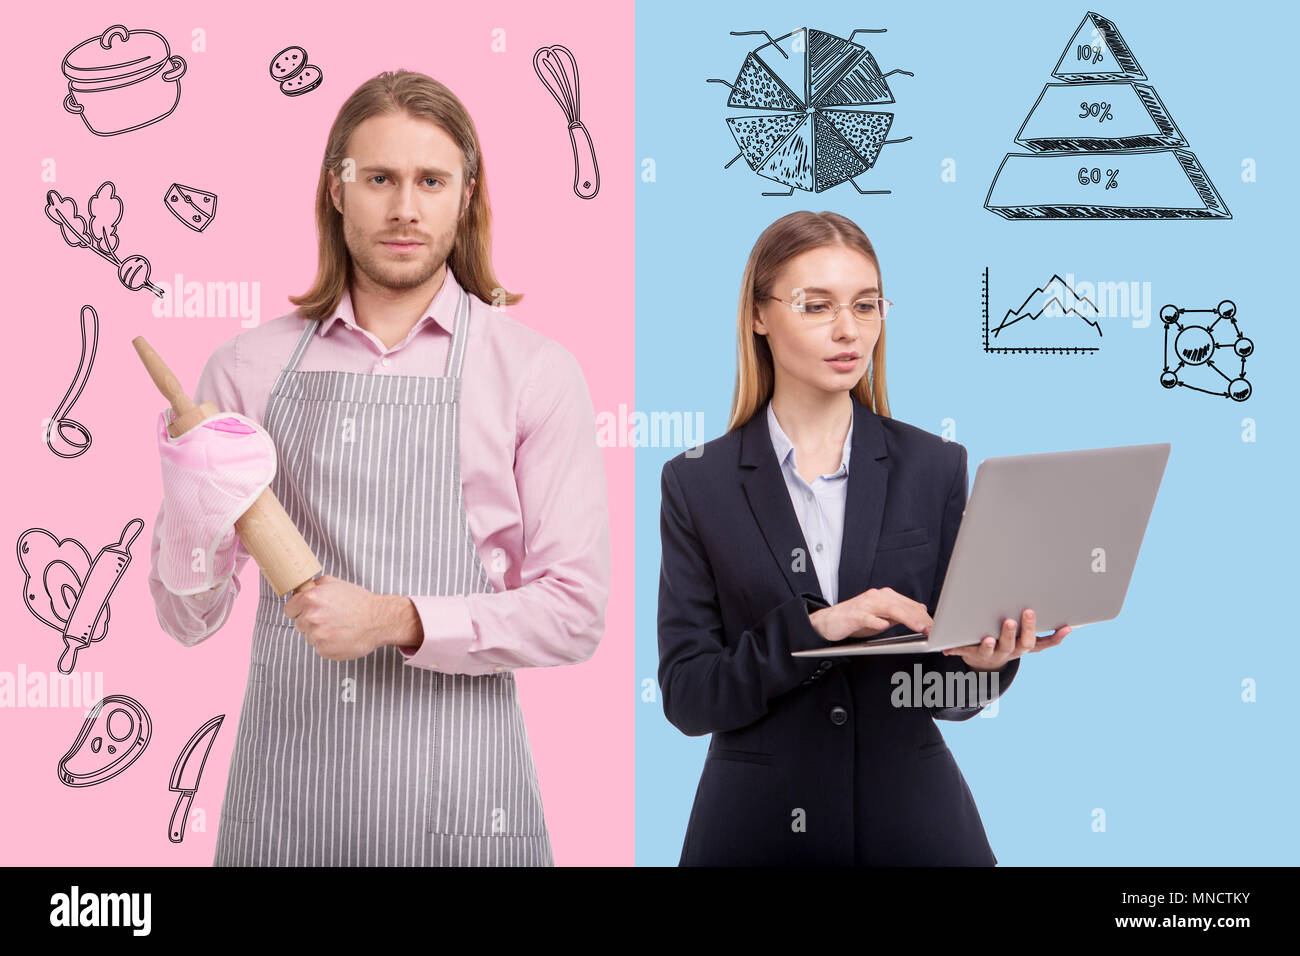 Waist up of businesswoman and housewife man - Stock Image